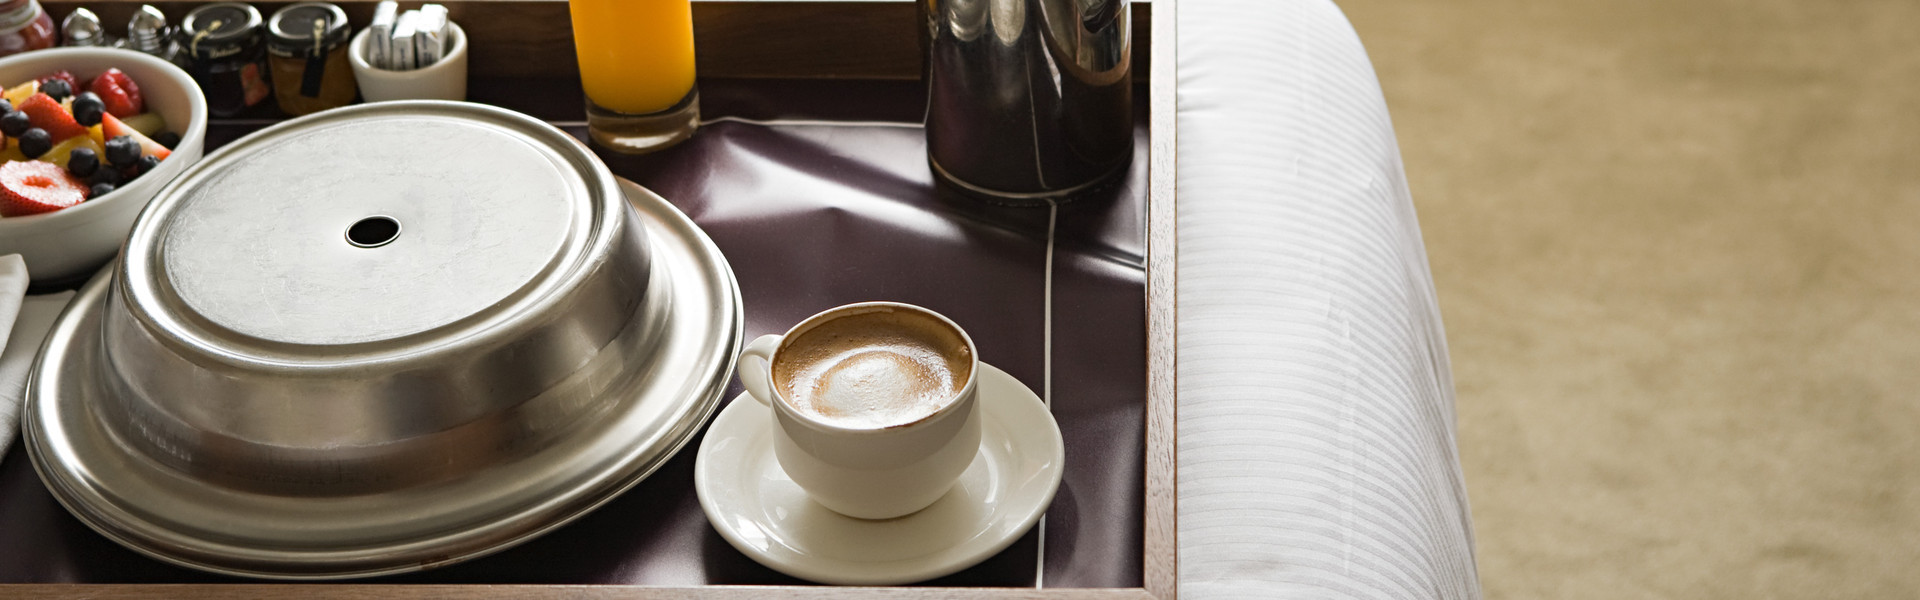 Room Service at our Las Vegas Hotel and Casino | Room Service Breakfast Items